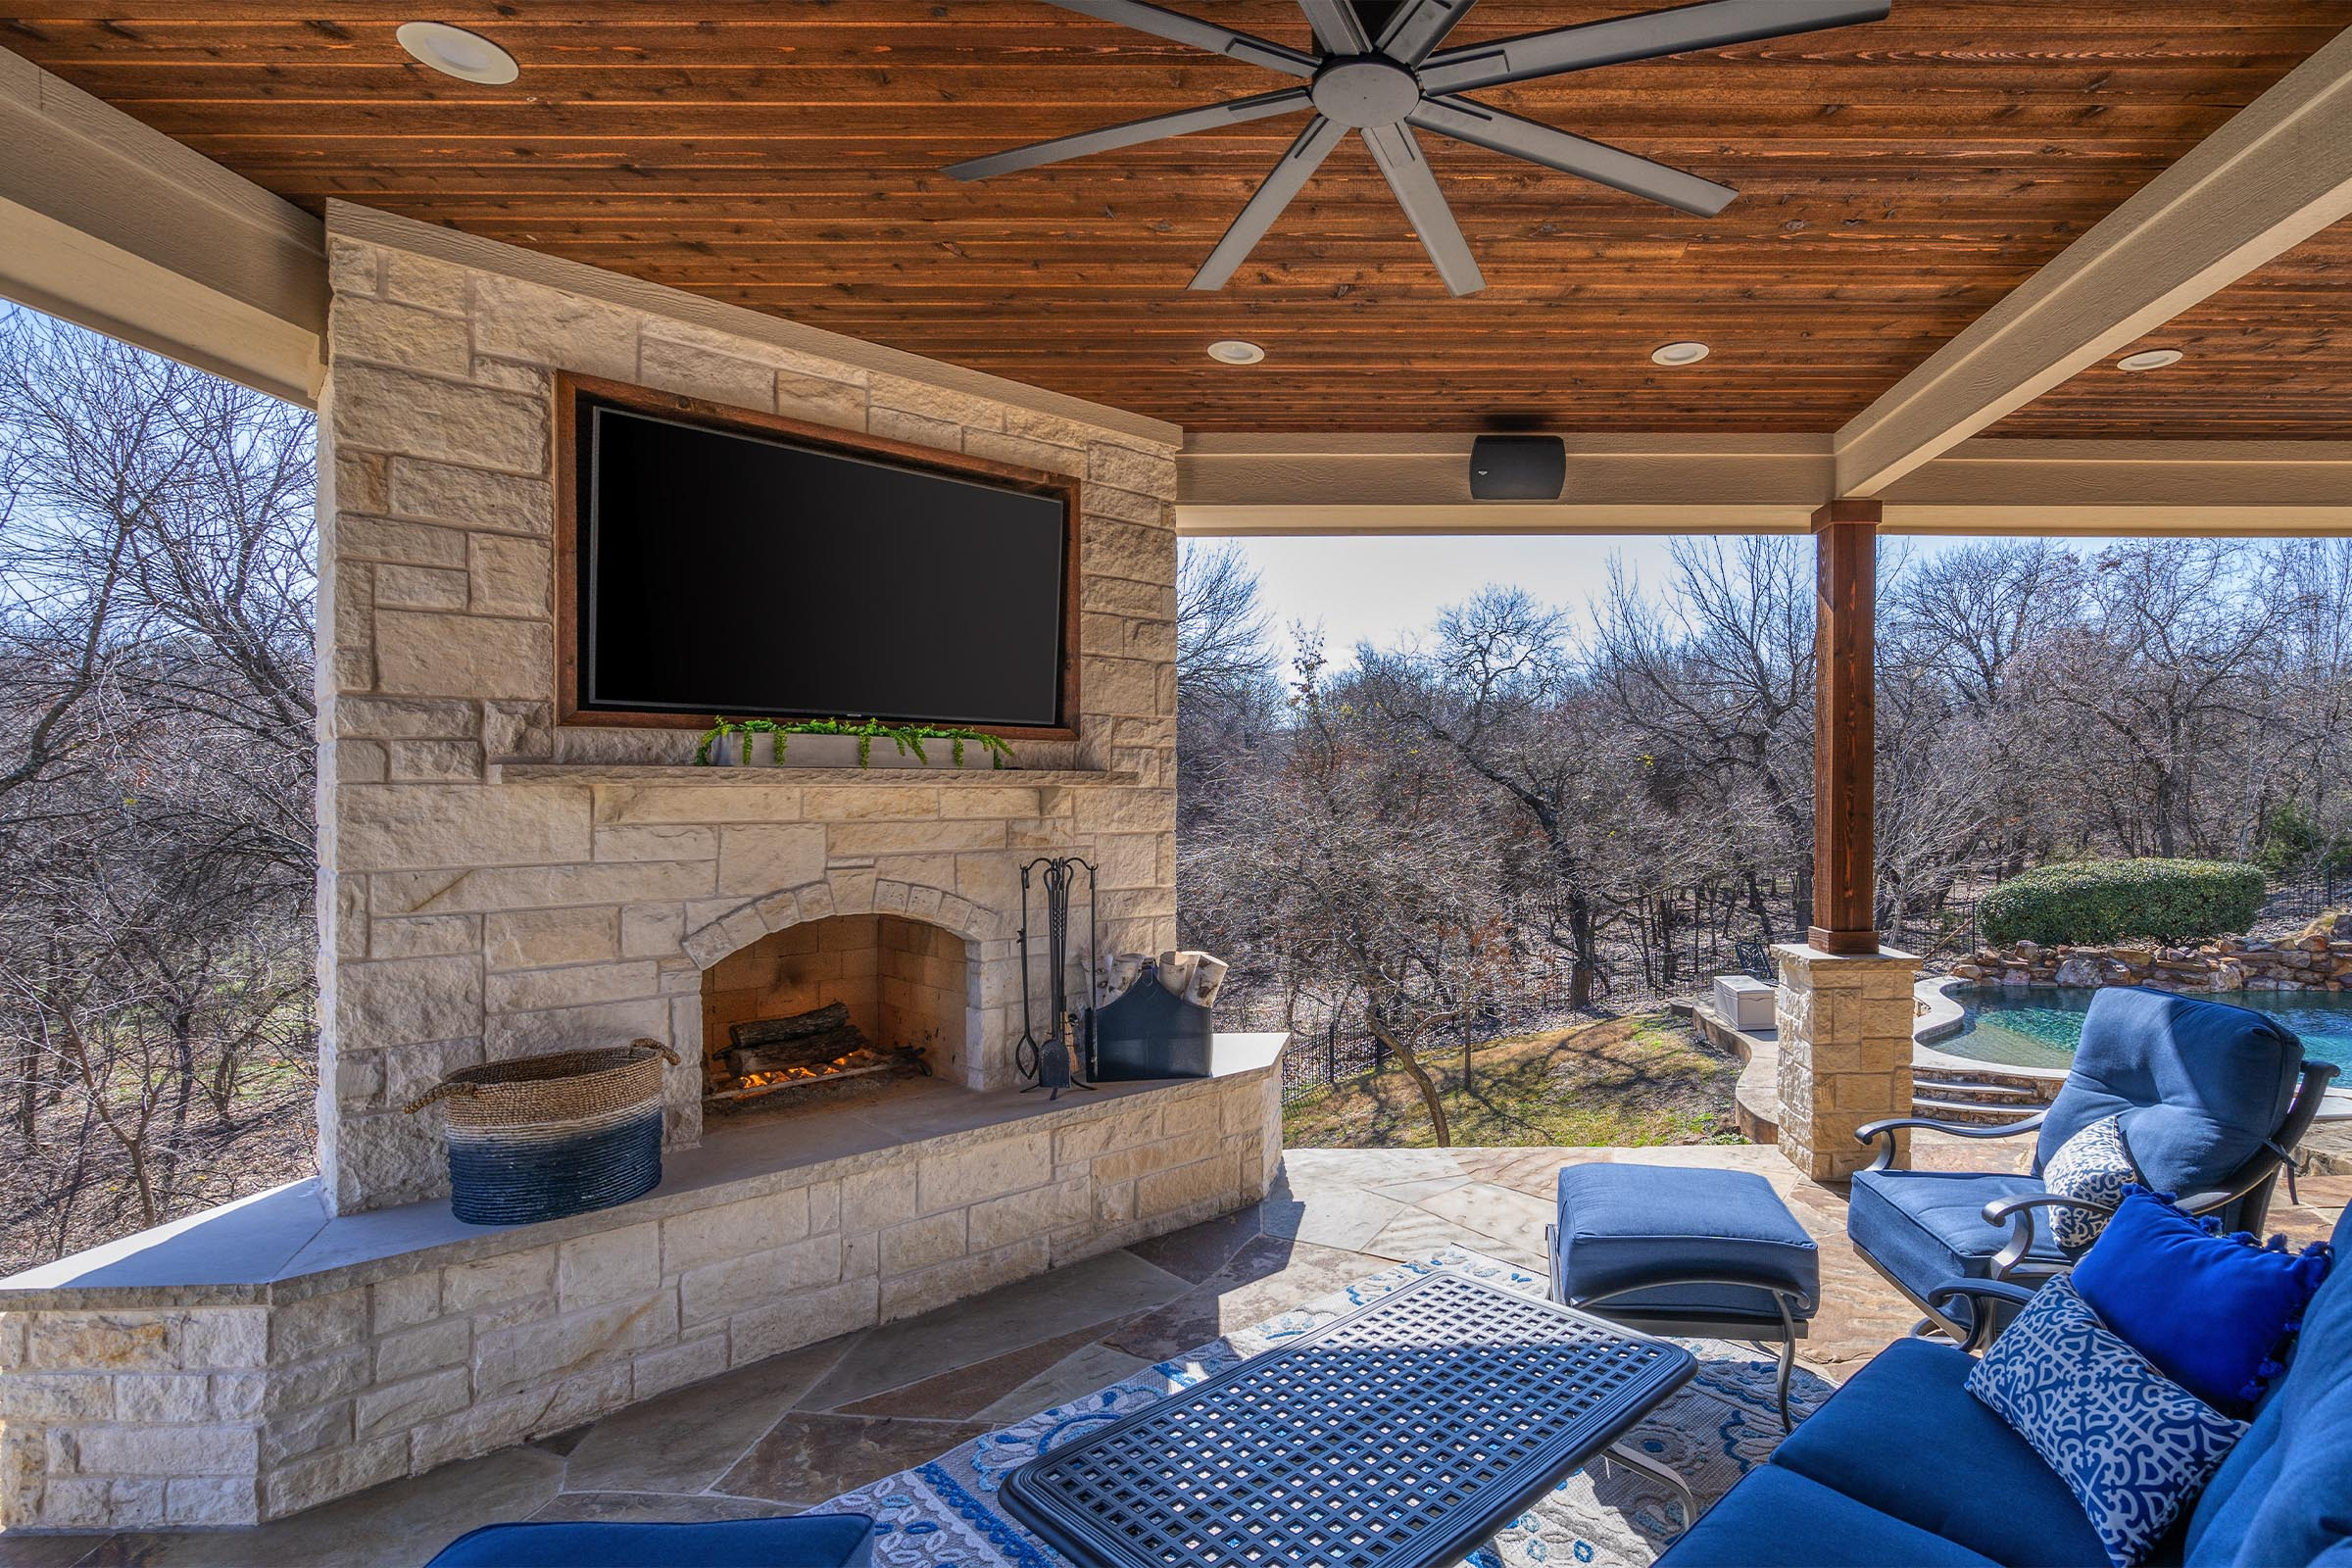 Outdoor Kitchens, Patio Covers | Fort Worth, Burleson TX ... on Dfw Complete Outdoor Living id=19542